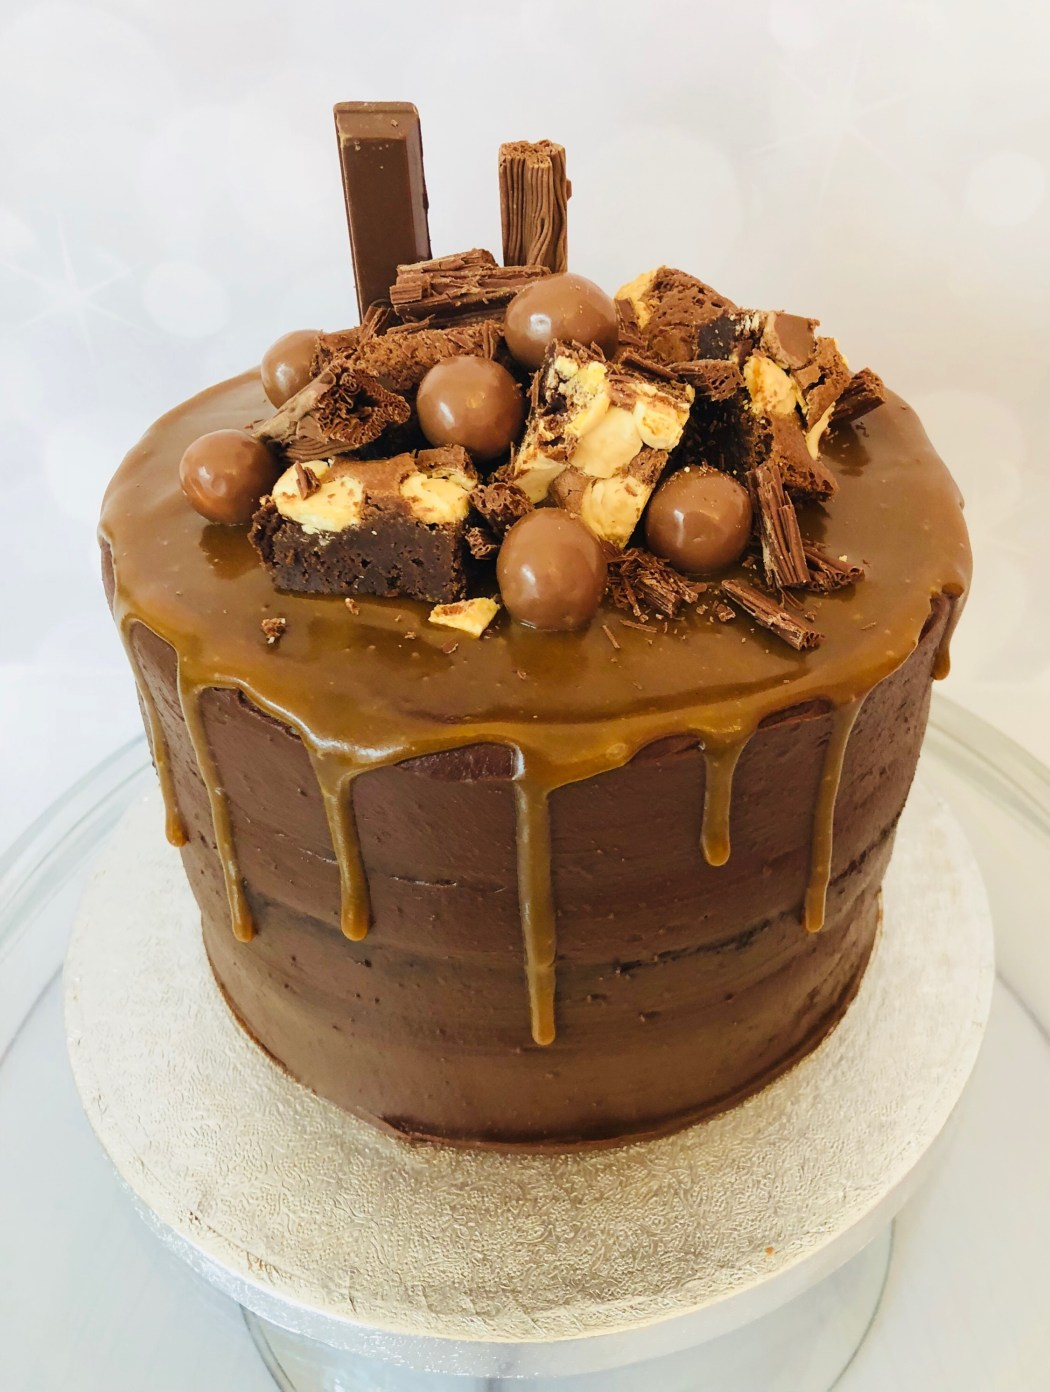 Chocolate, caramel and brownie cake